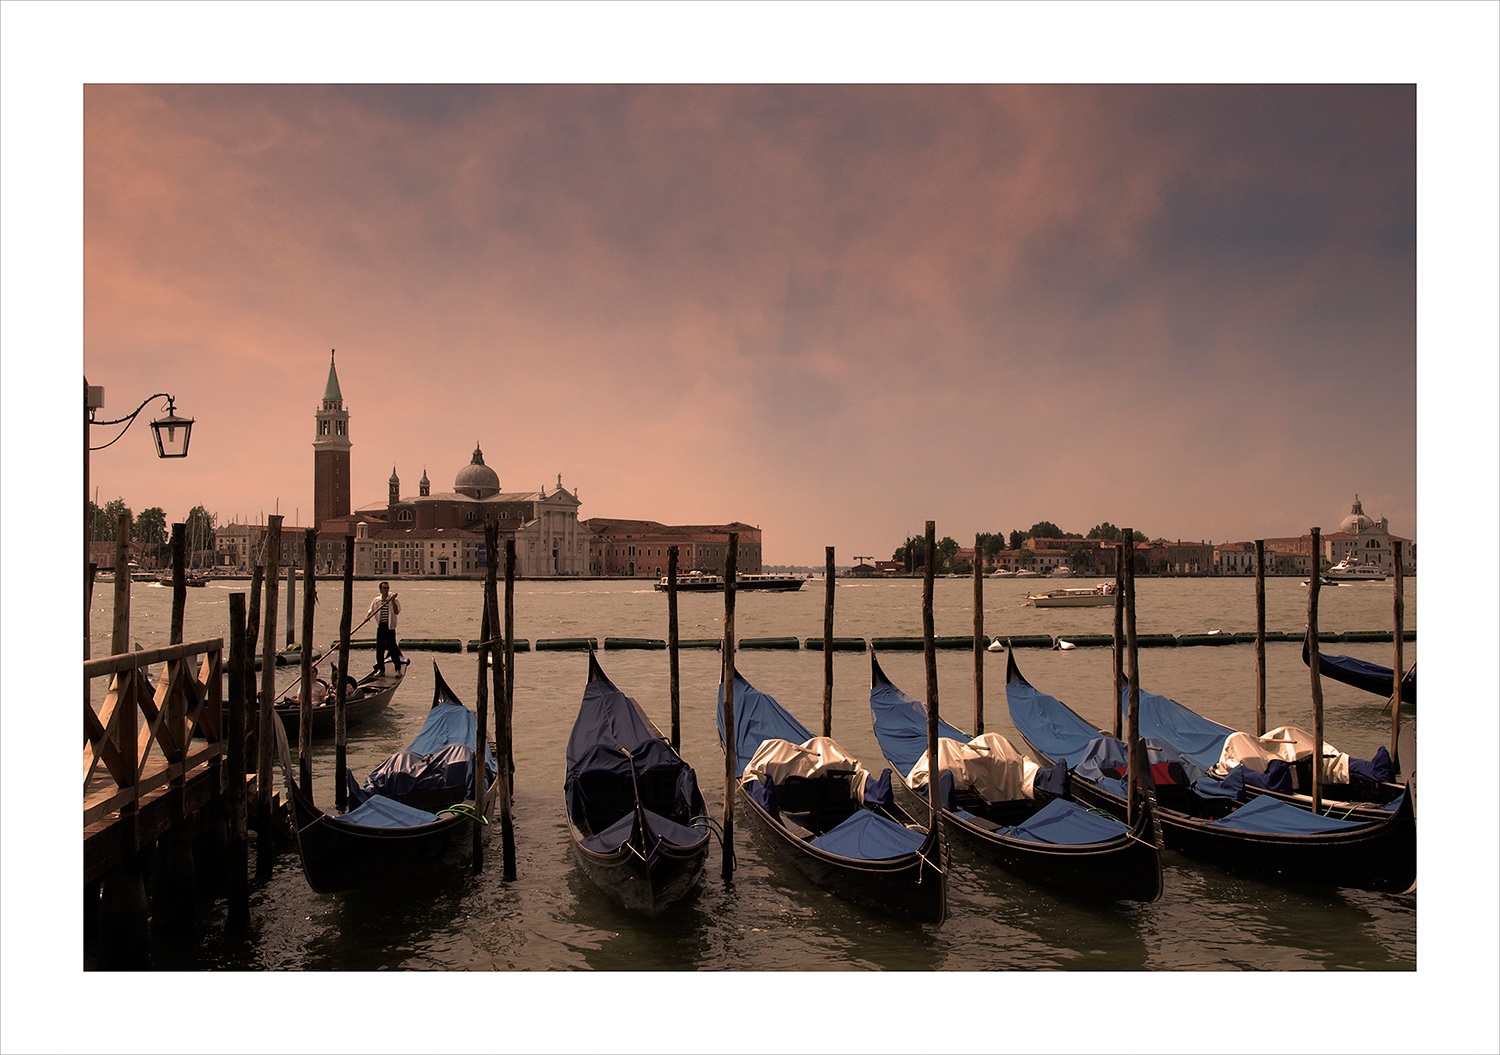 Gondolas at dusk, Venice